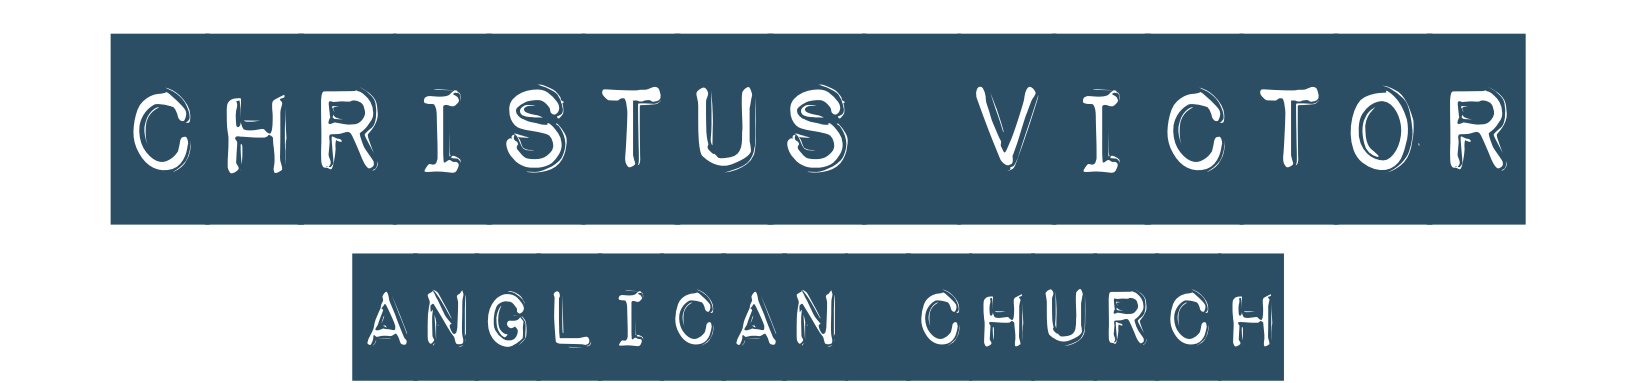 Christus Victor Anglican Church—Phoenix, AZ